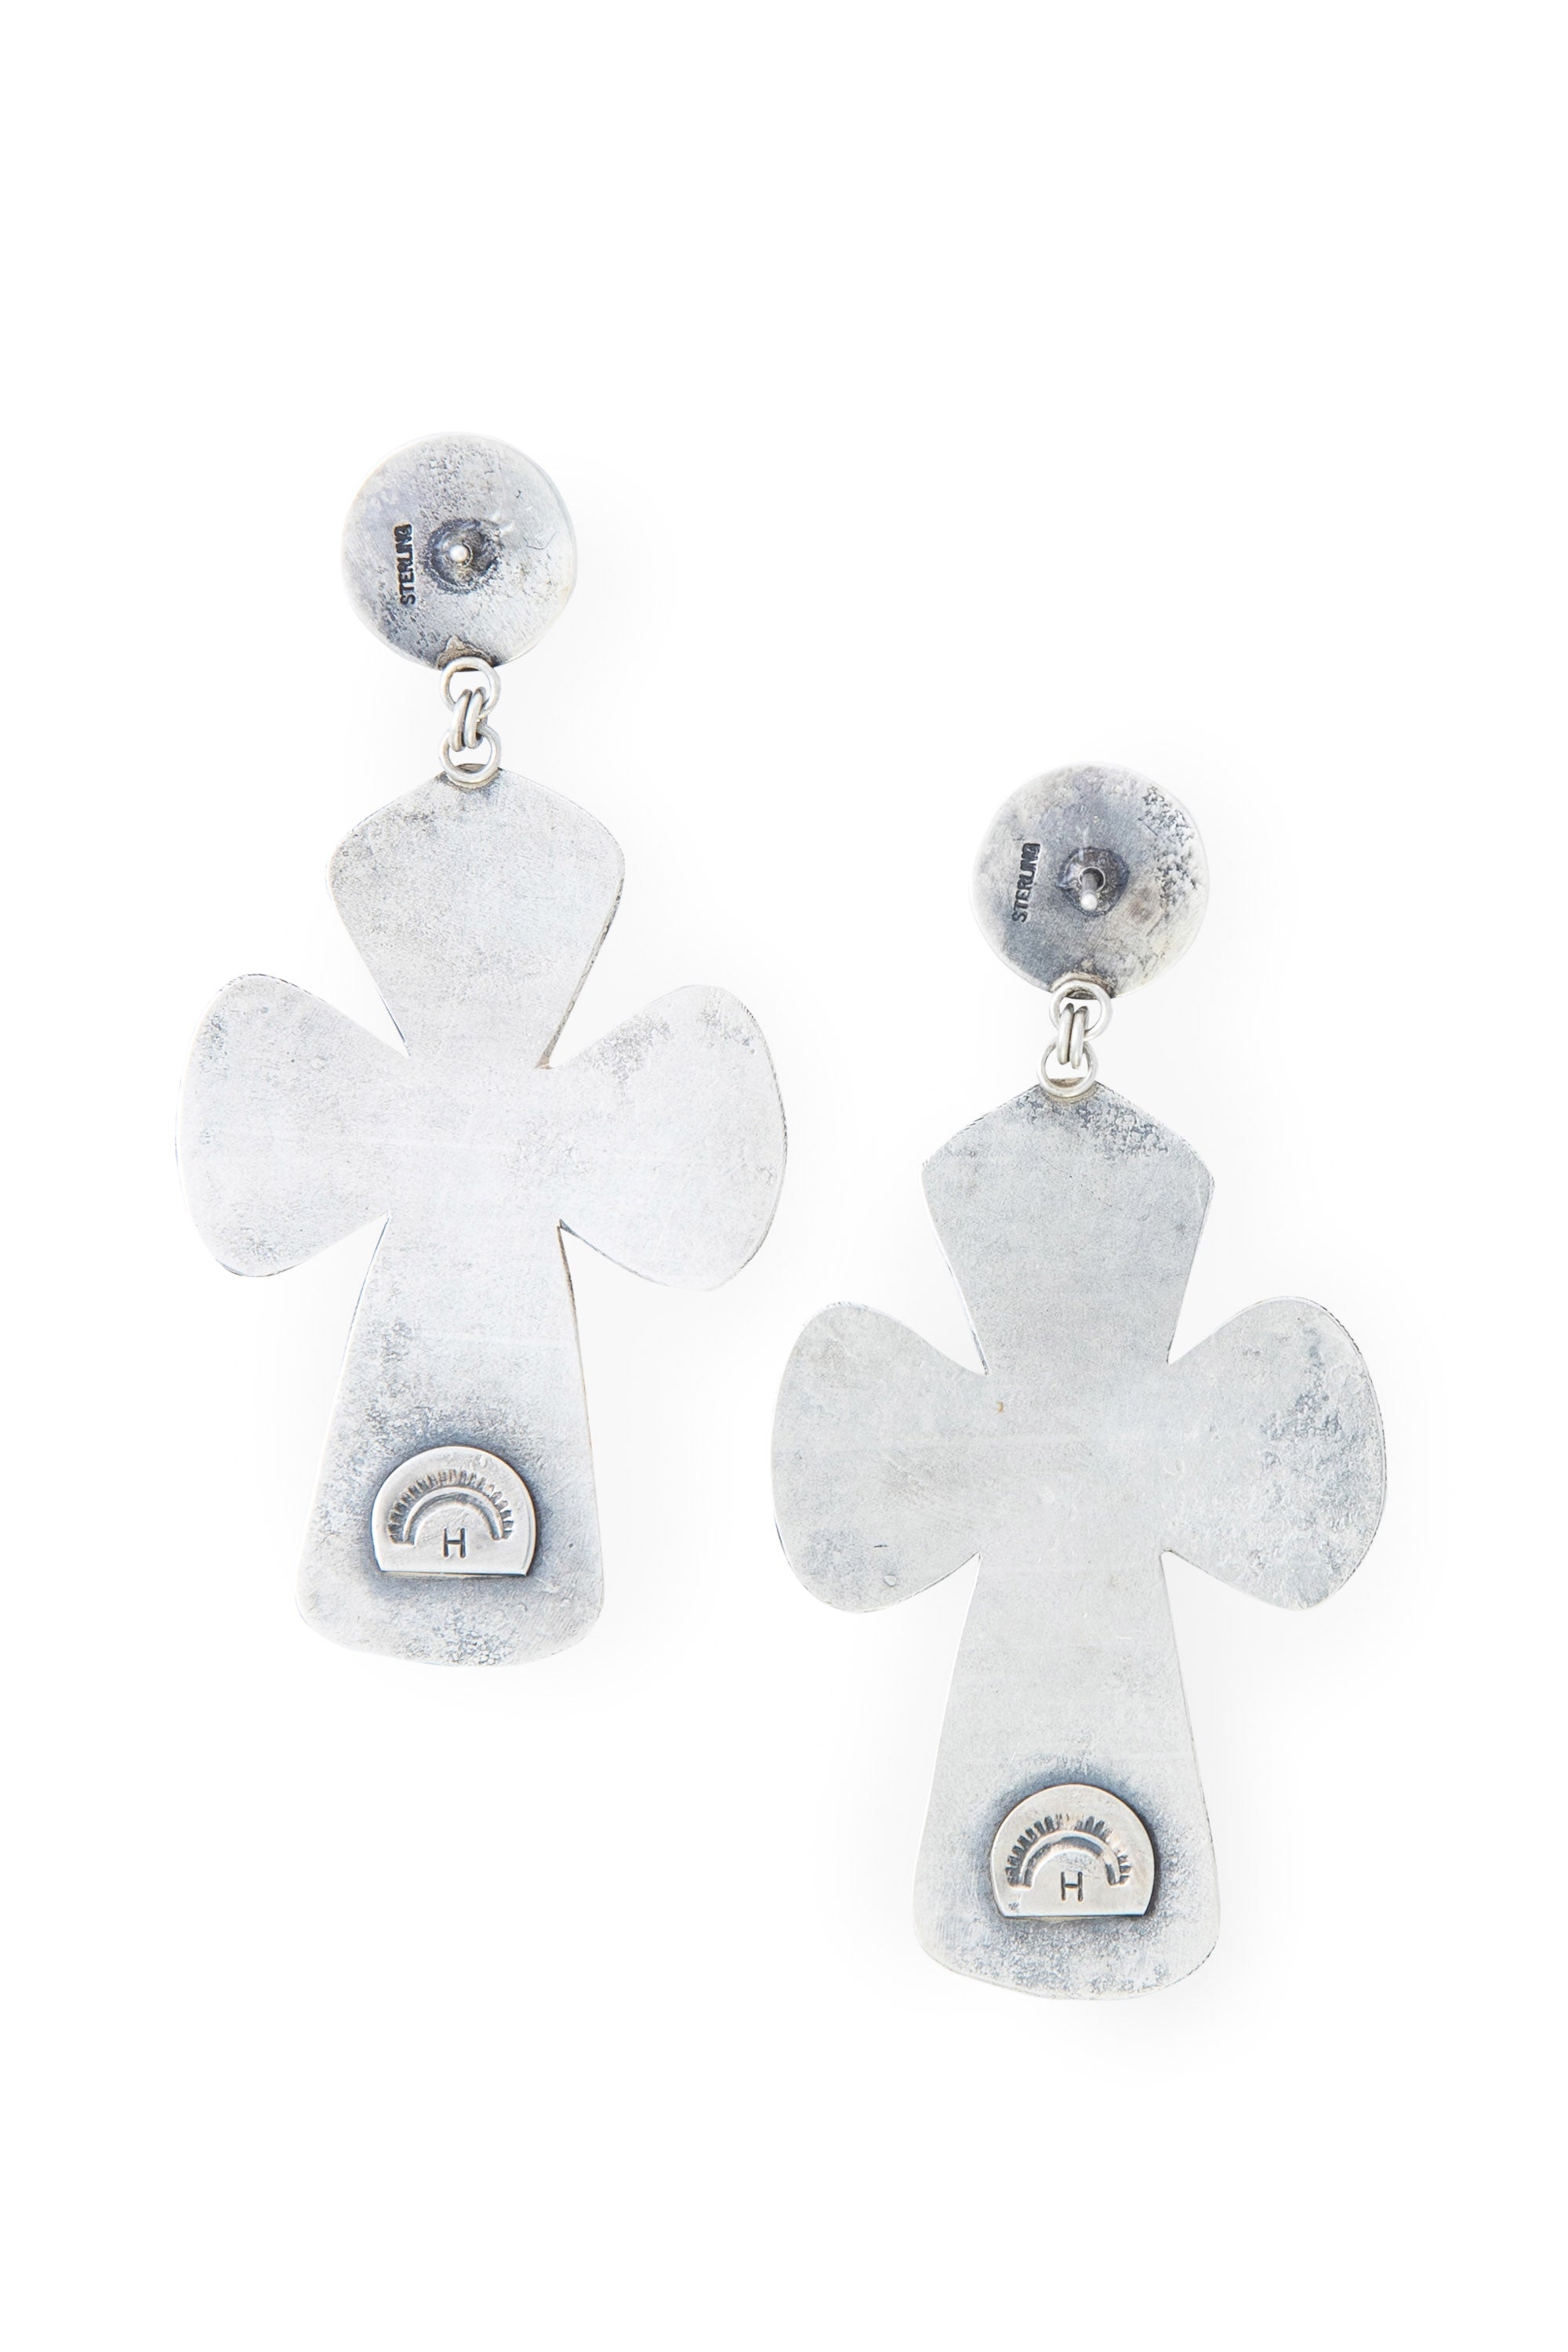 Earrings, Novelty, Sterling Silver, Cross, 549